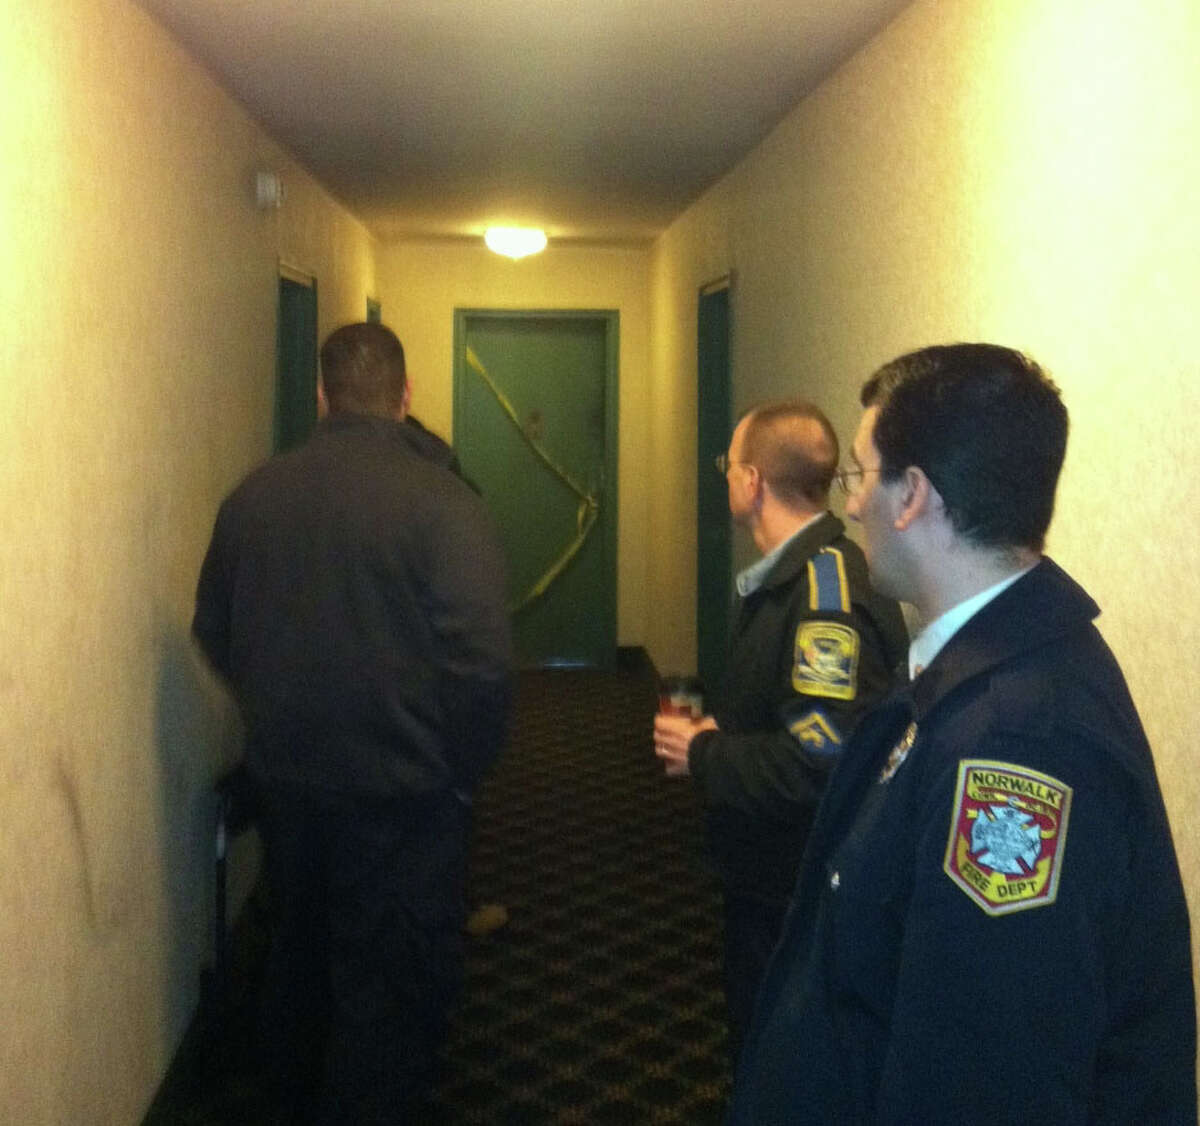 State and Norwalk fire investigators inspect a hallway of an apartment building in Norwalk, Conn. where two residents, Judy O'Brien 62 and her mother, Marjorie Johnson, 92, mother, died following a fire on Tuesday, Jan. 31, 2012,